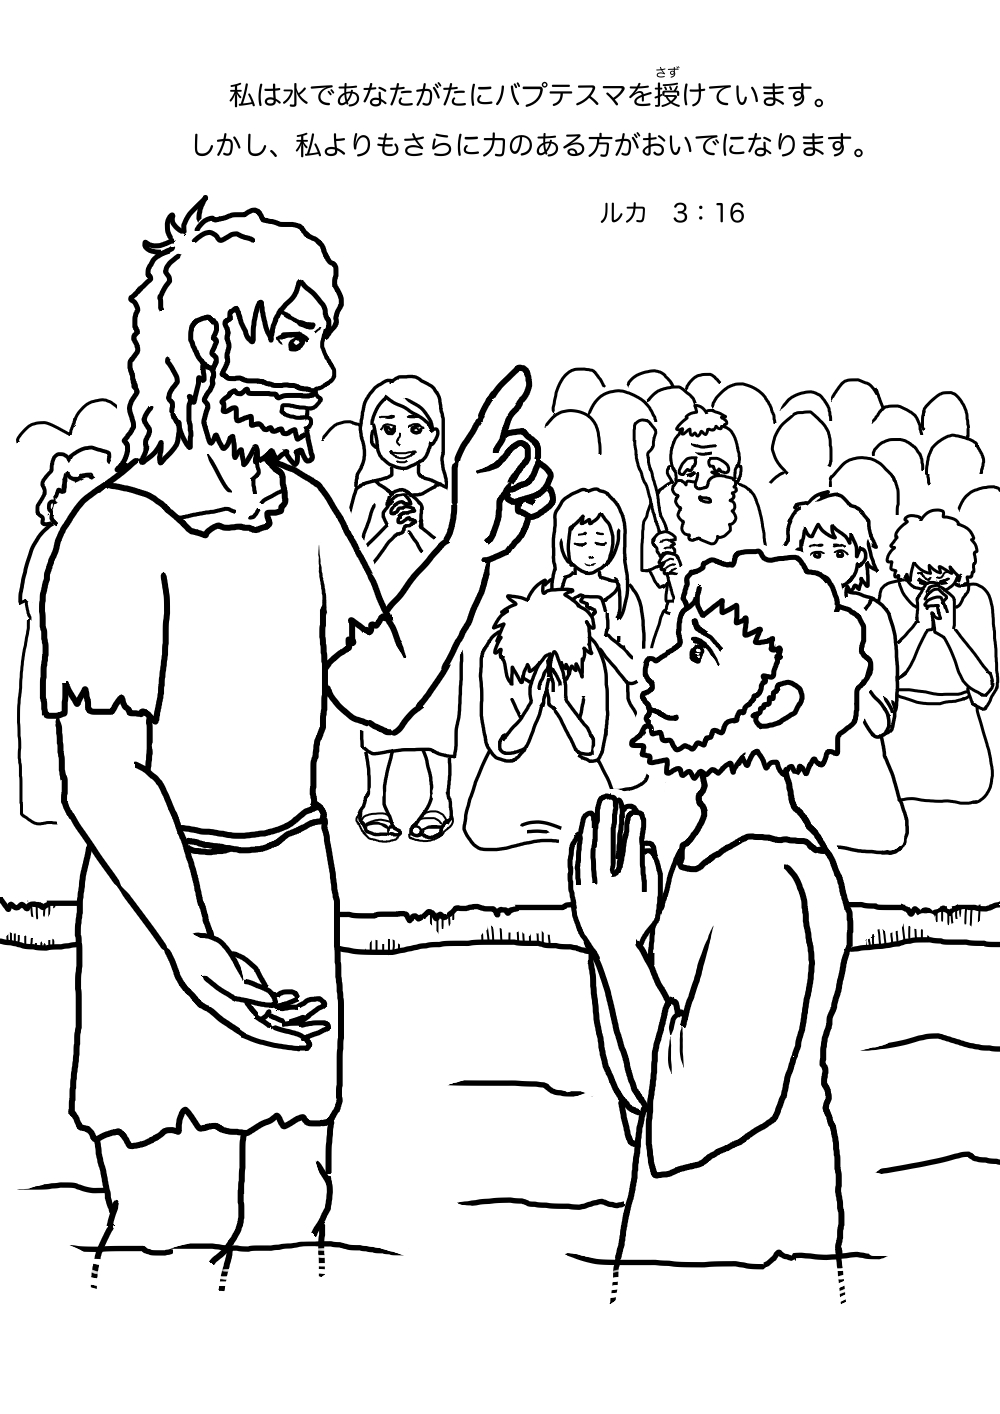 mercy watson coloring pages | Jonh The Baptis - Free Coloring Pages